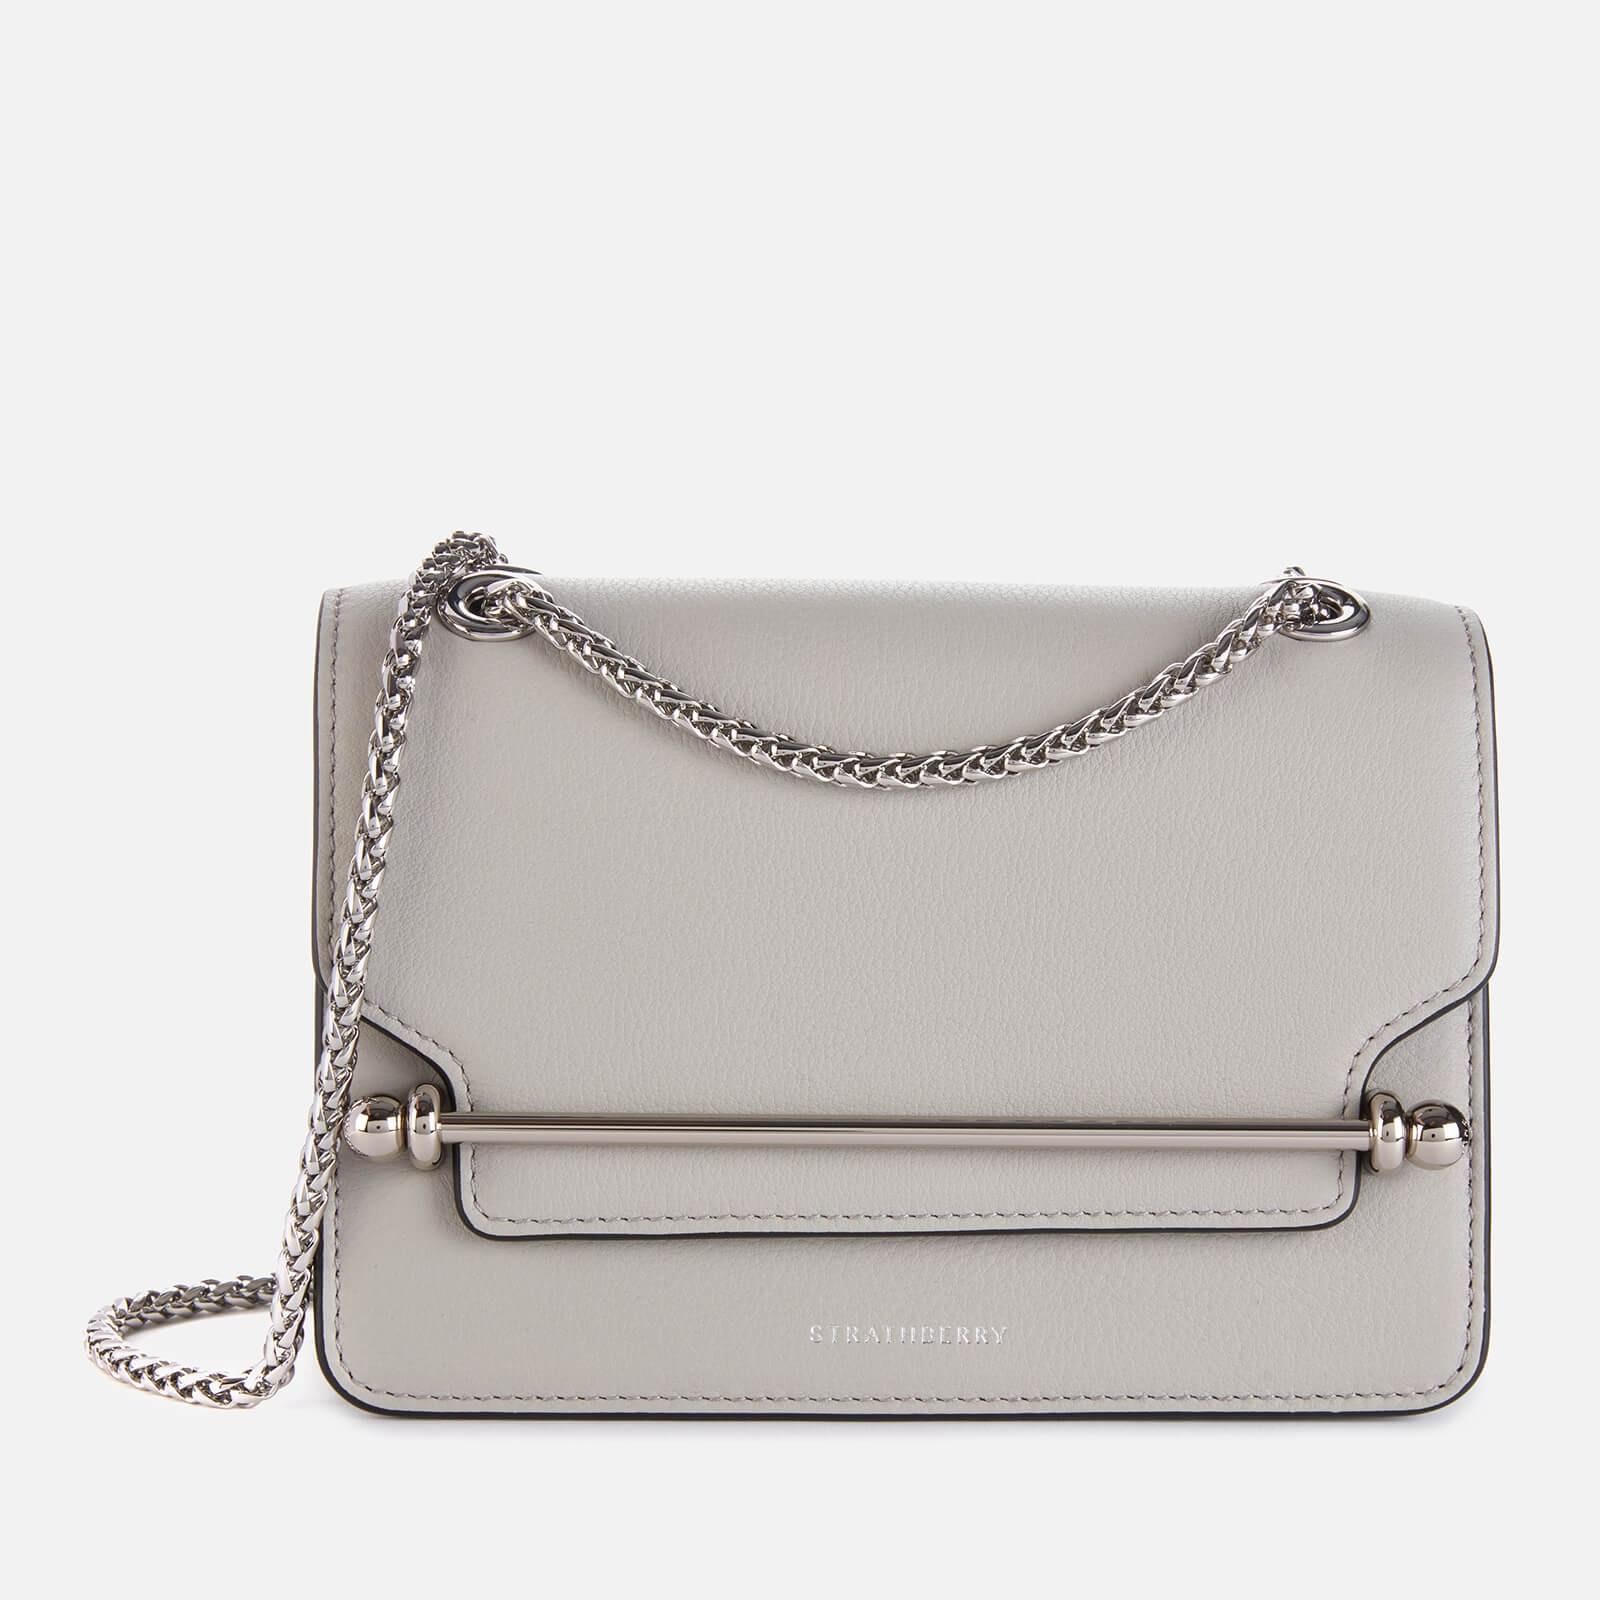 Coggles AU & UK: Discover the curated range of must-have bags